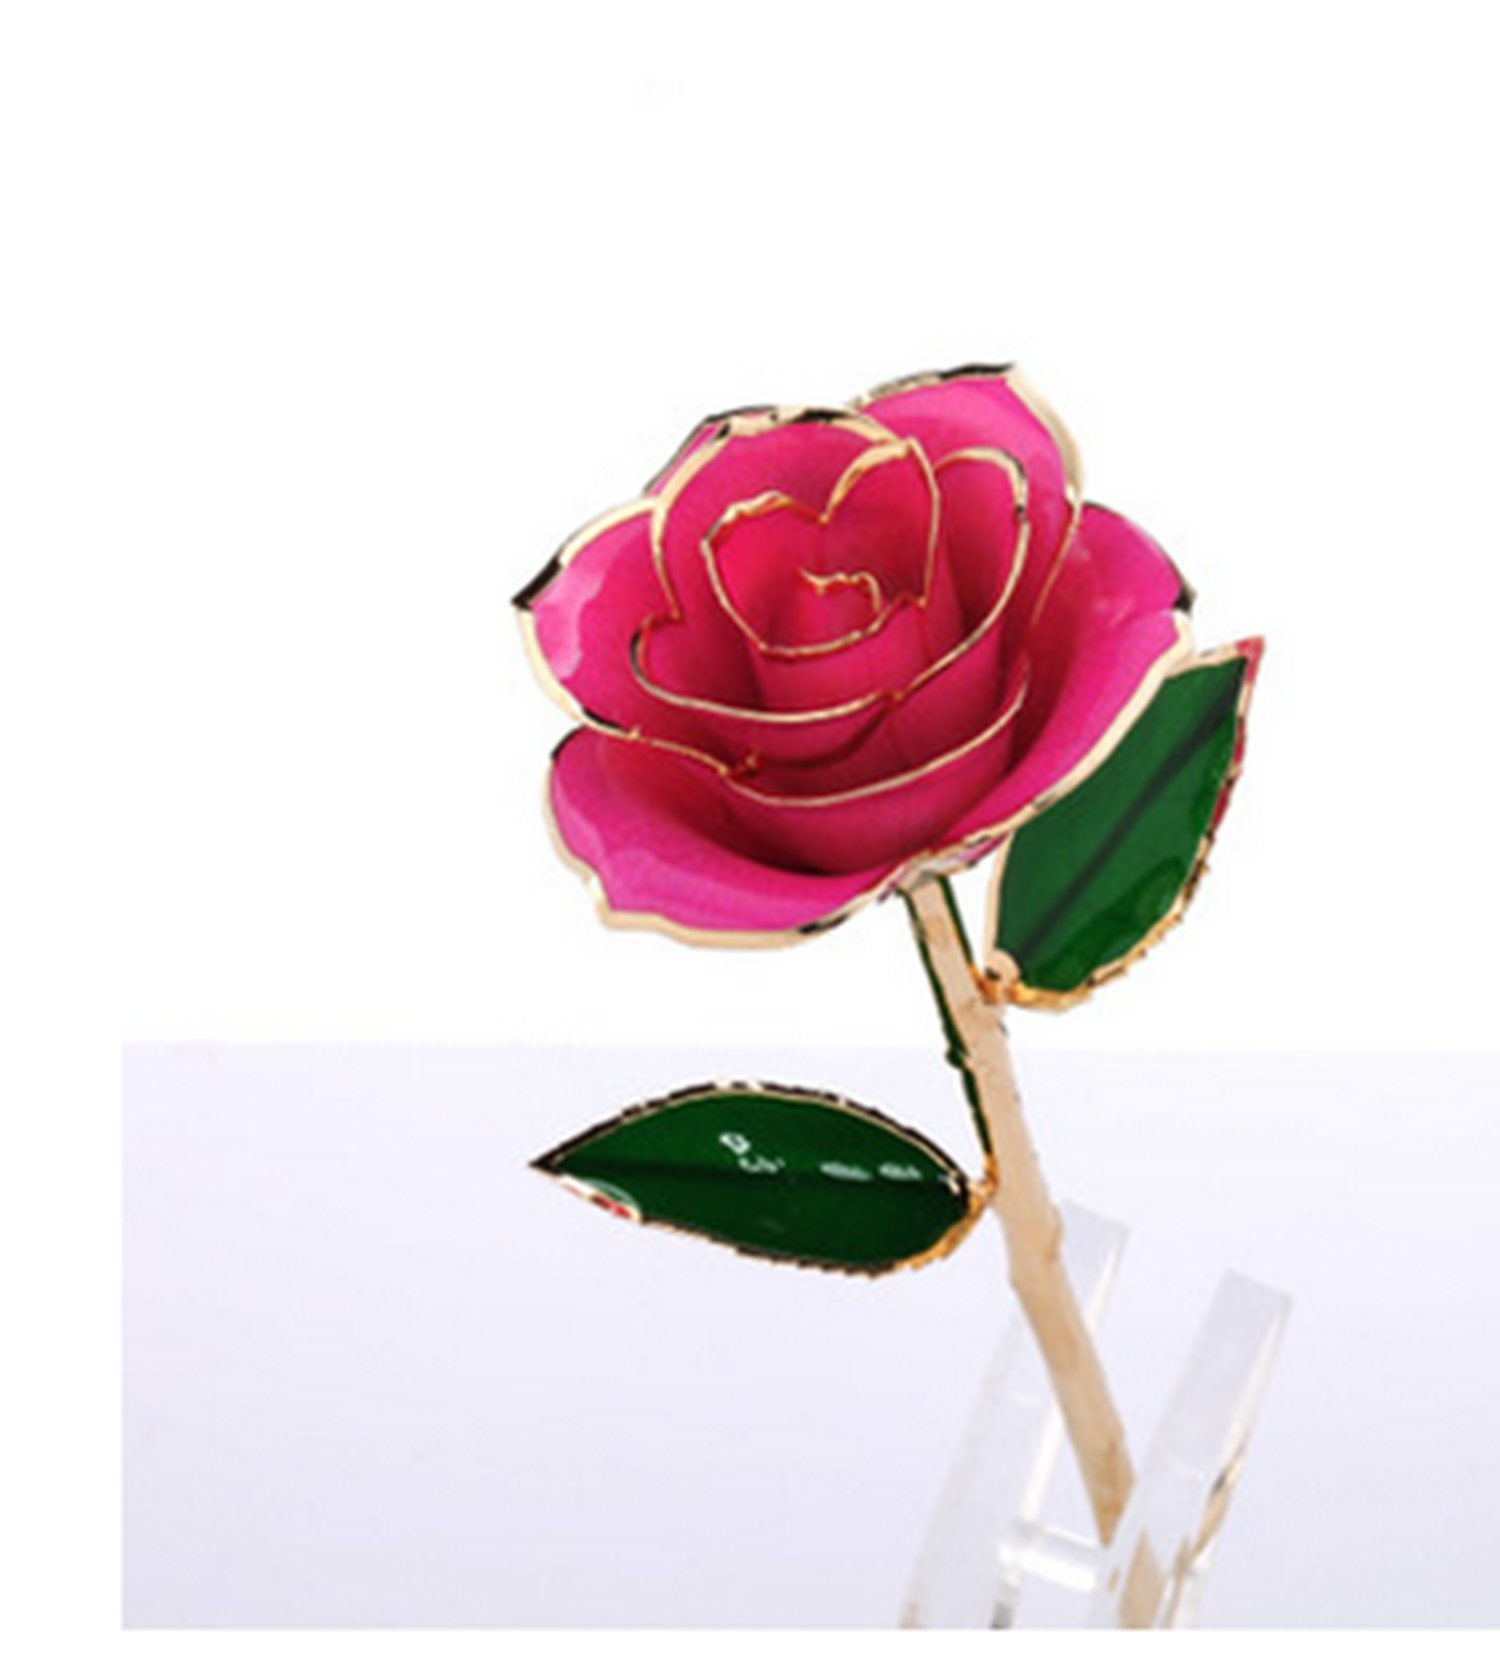 Wincspace Laquered Platinum Real Long Stem Dipped 24K Gold Trim Genuine Rose in Gold Retail Gift Box Best Gift Valentine's Day &Mother's Day Mother & Girl Friend (Pink)